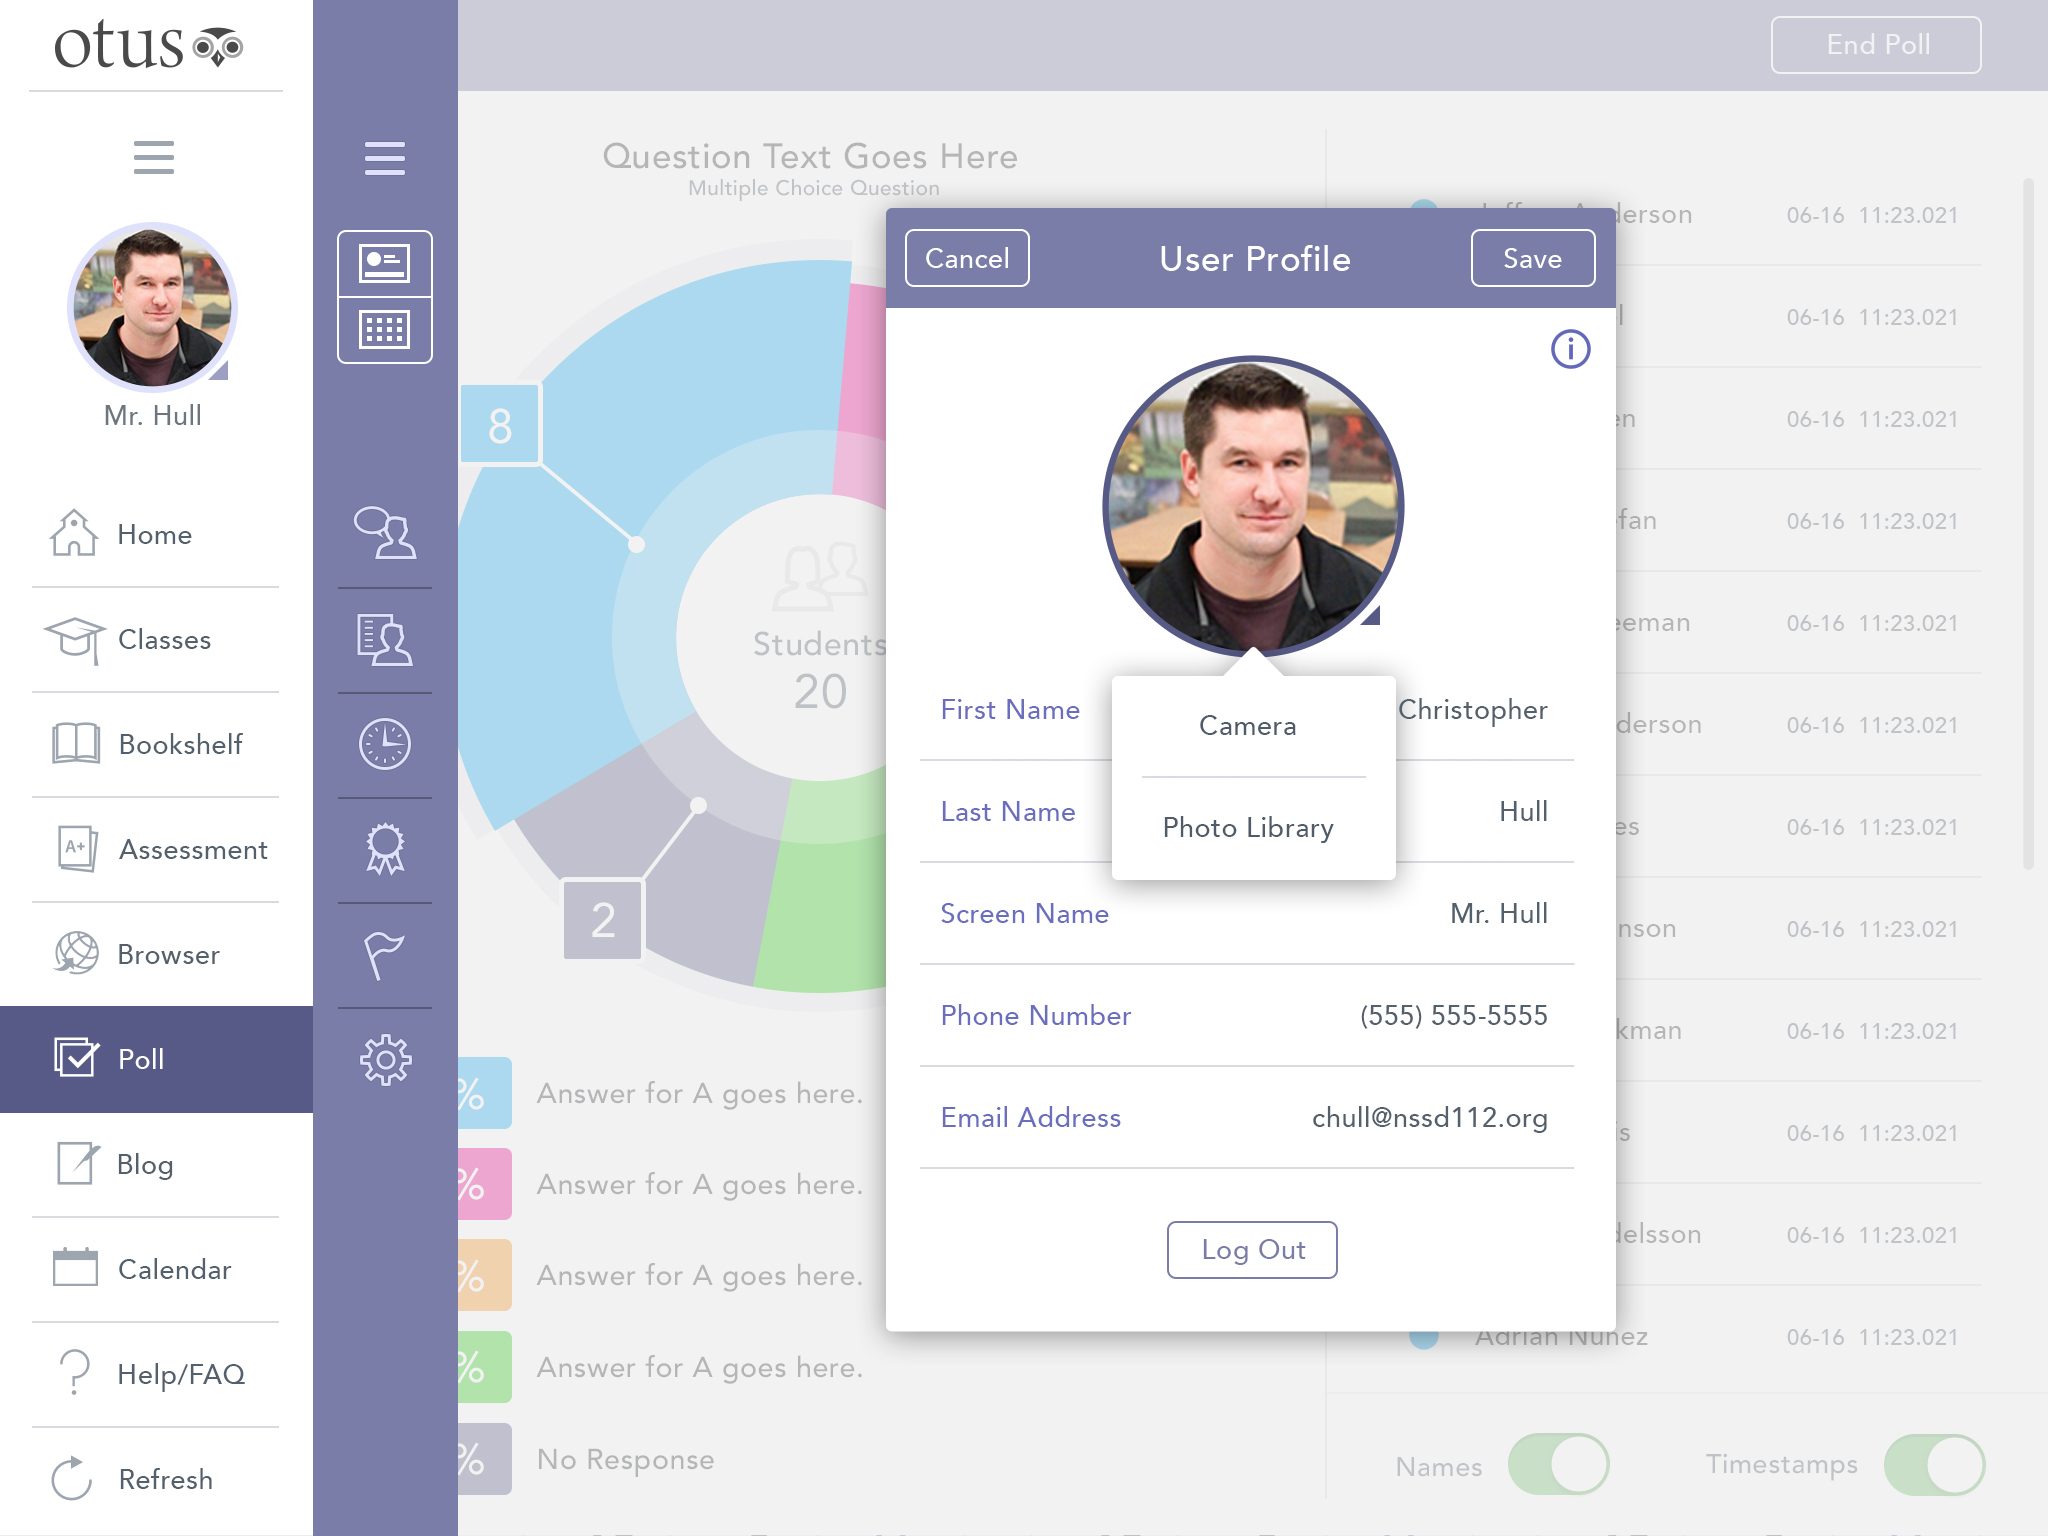 Otus Update: New LMS Features Announced at ISTE